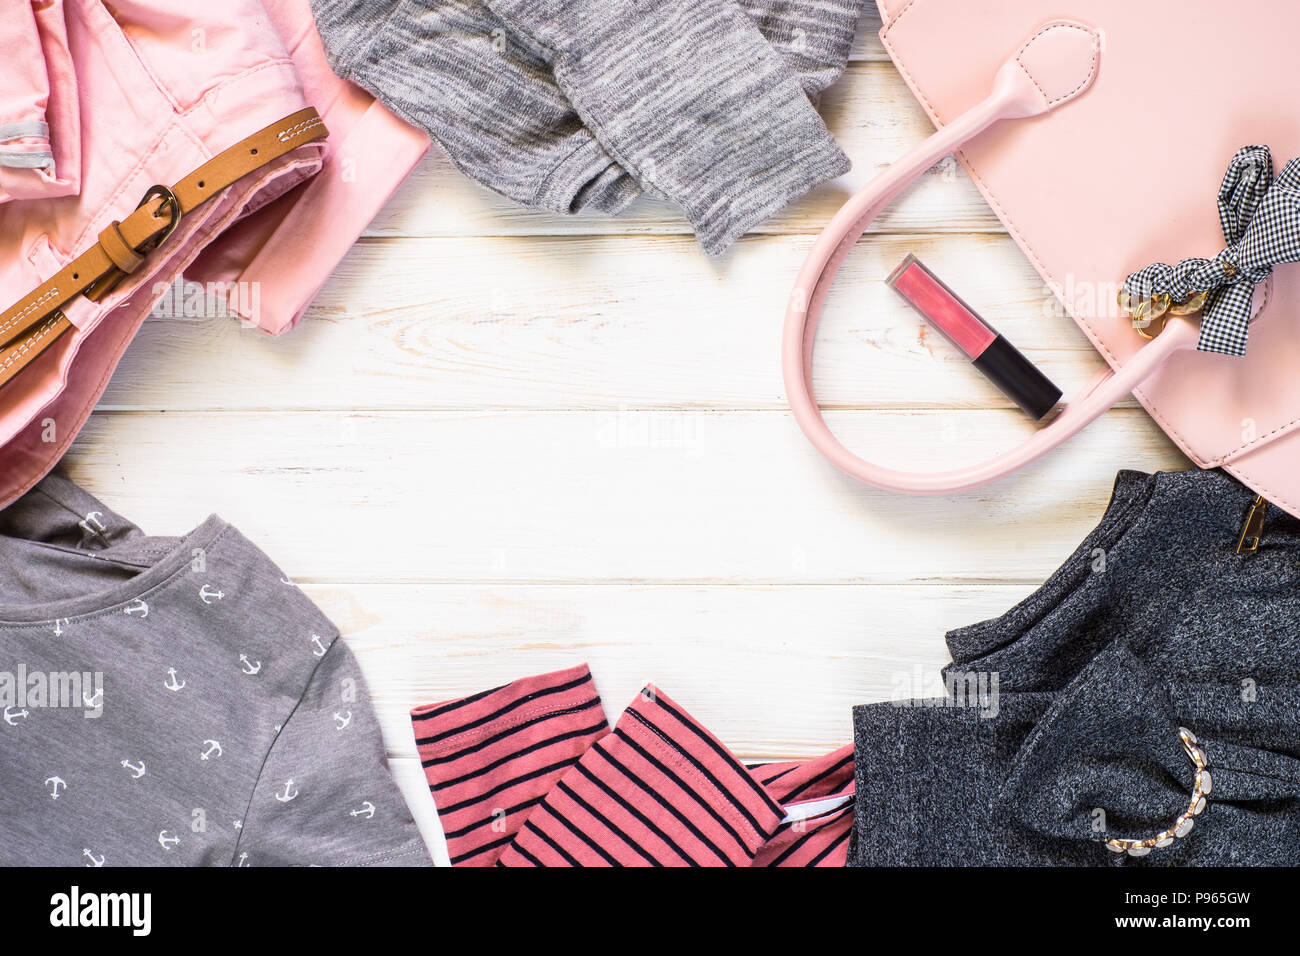 830dd80a9334 Woman clothes and accessories in pink and gray colors - top